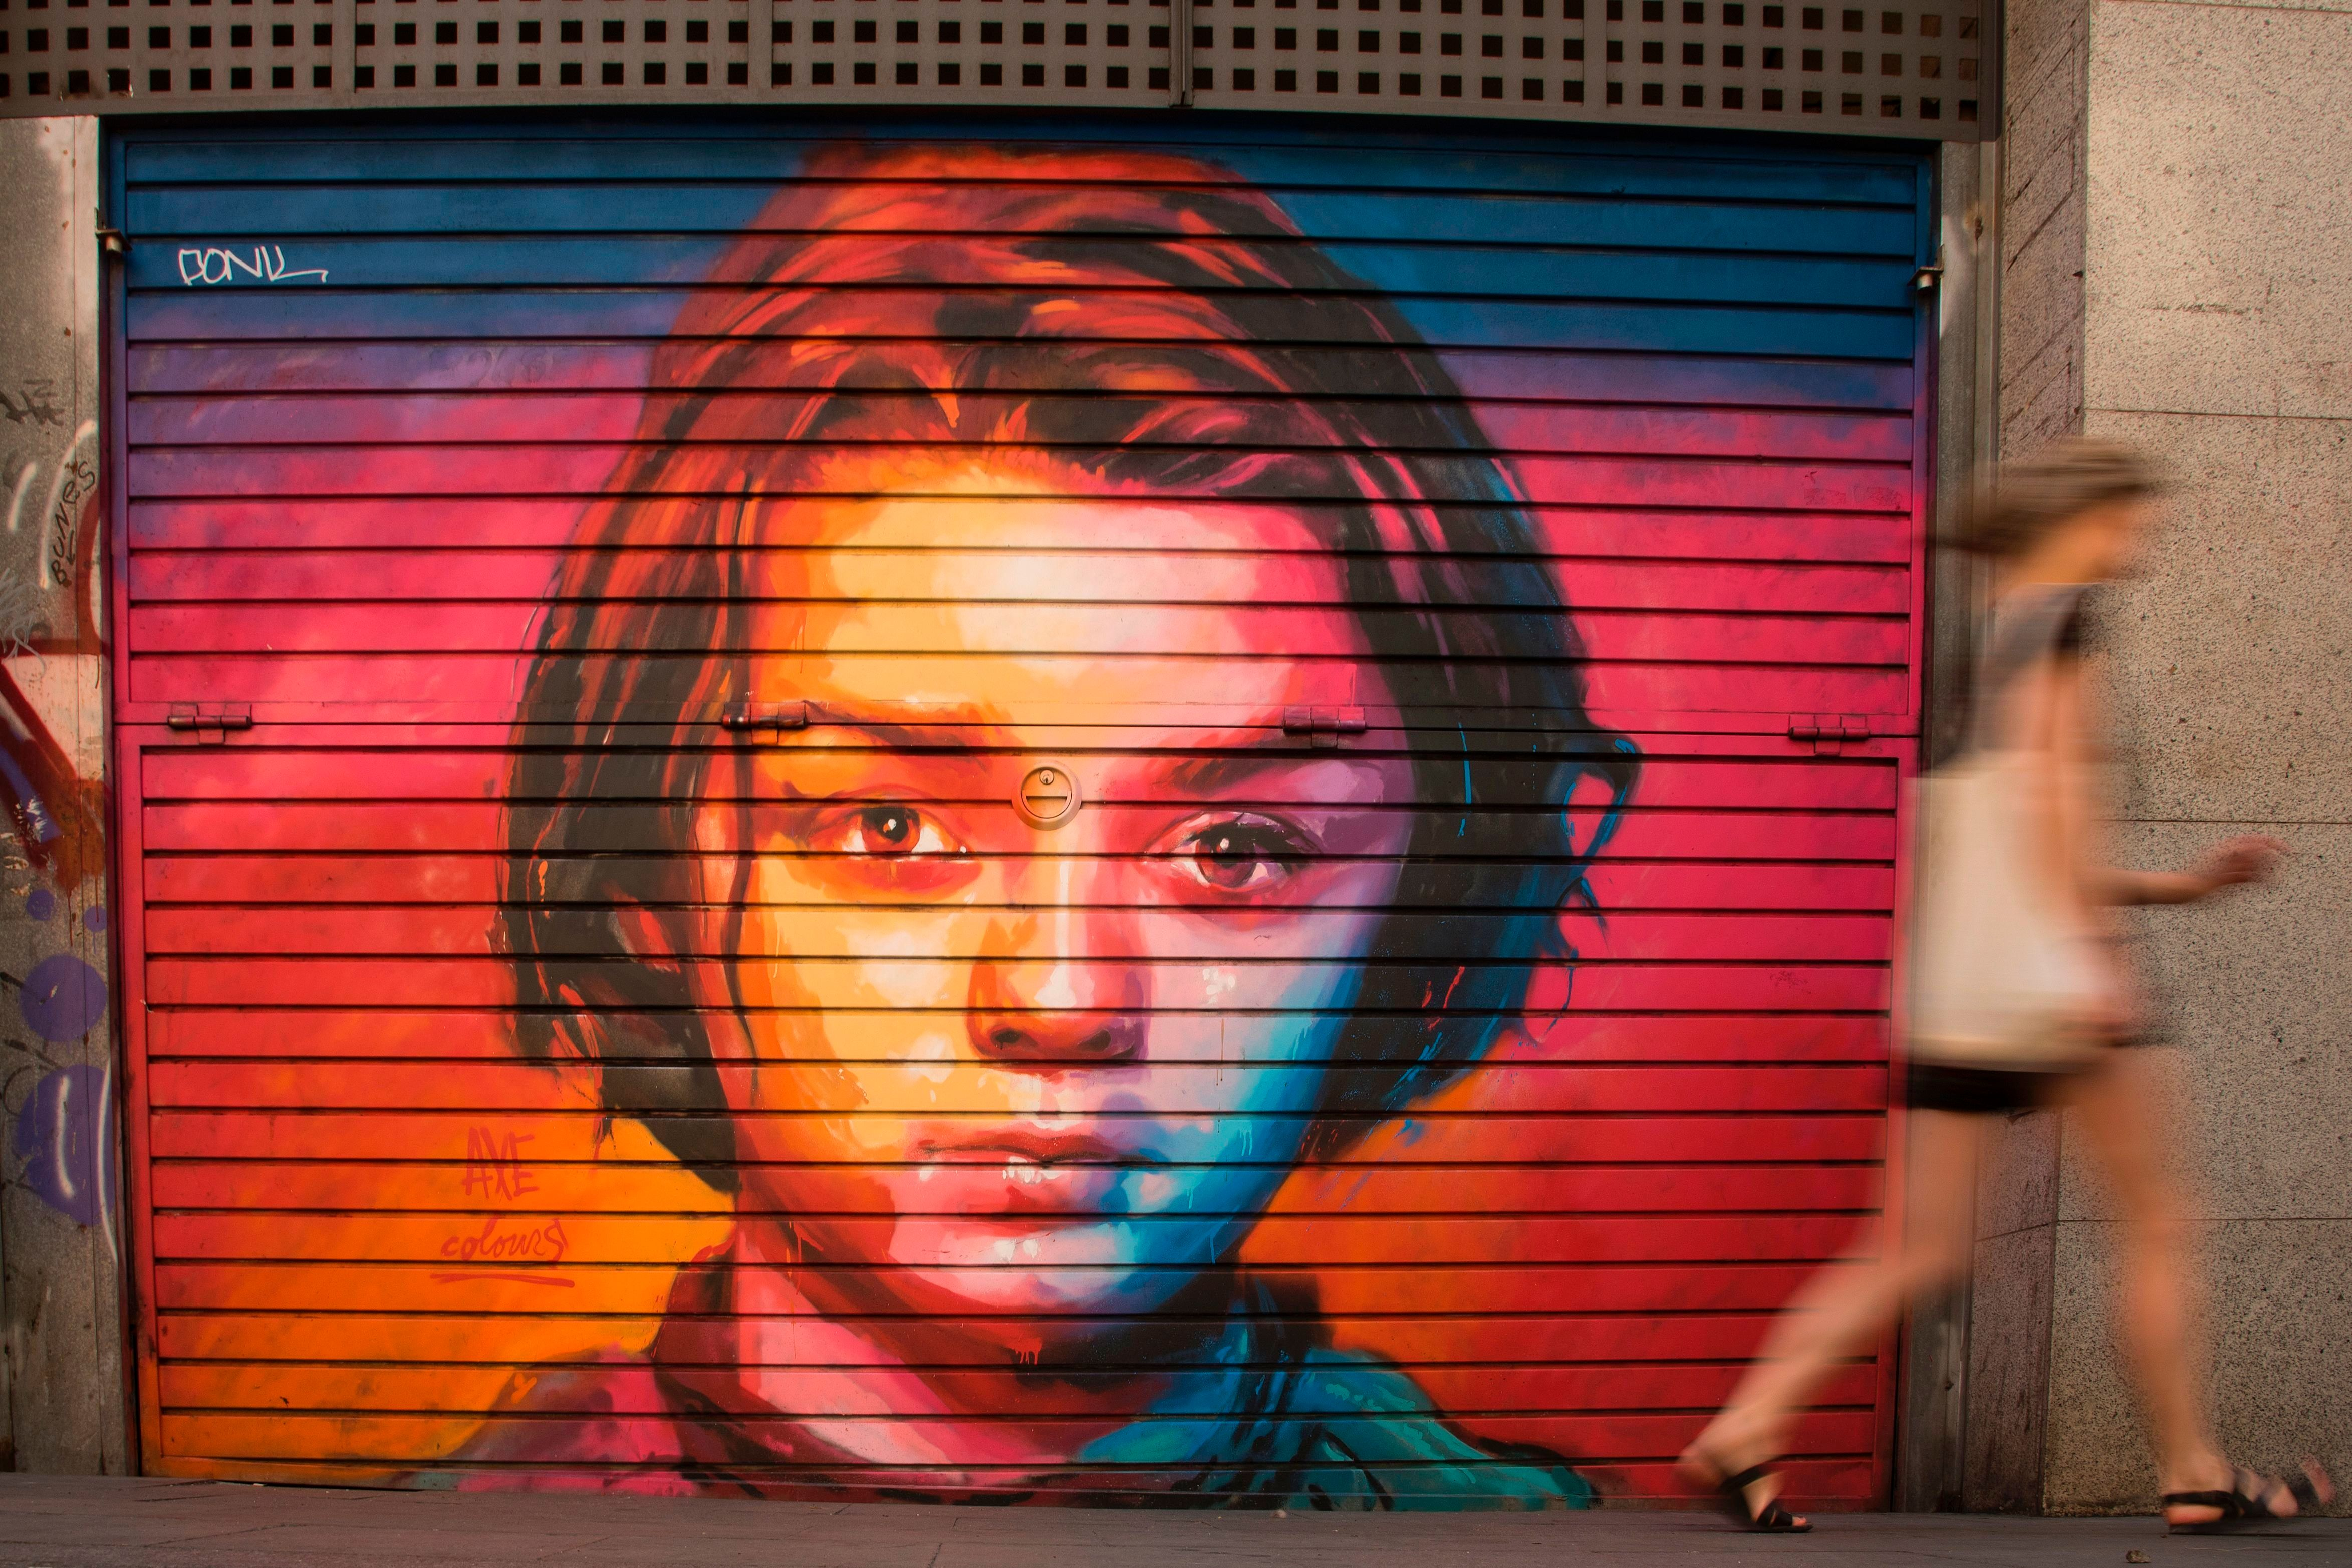 A woman walks in front a graffiti by street artist 'Axe Colours' portraying British actress Maisie Williams known for playing Arya Stark in The Game of Thrones TV series, in Barcelona  on July 30, 2017. / AFP PHOTO / Josep LAGO        (Photo credit should read JOSEP LAGO/AFP/Getty Images)